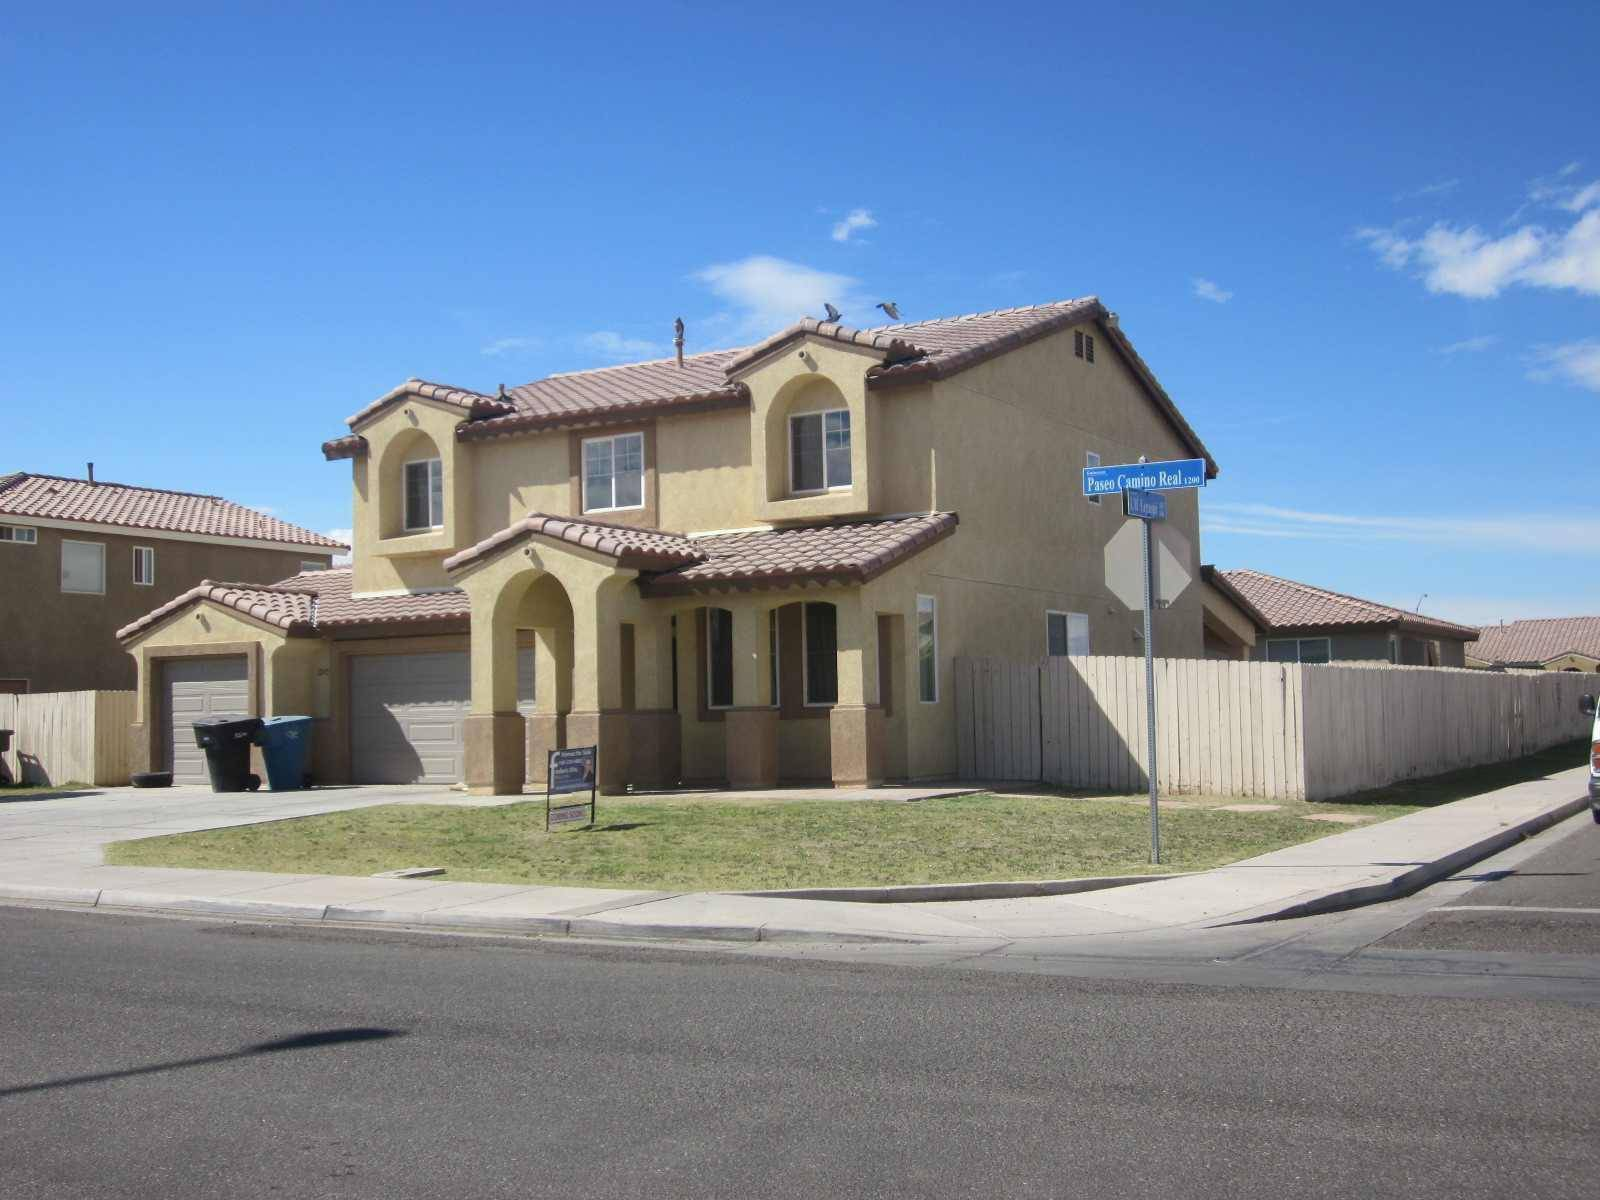 Calexico (CA) United States  city photos : House for Sale Calexico, California, United States Corner lot two ...